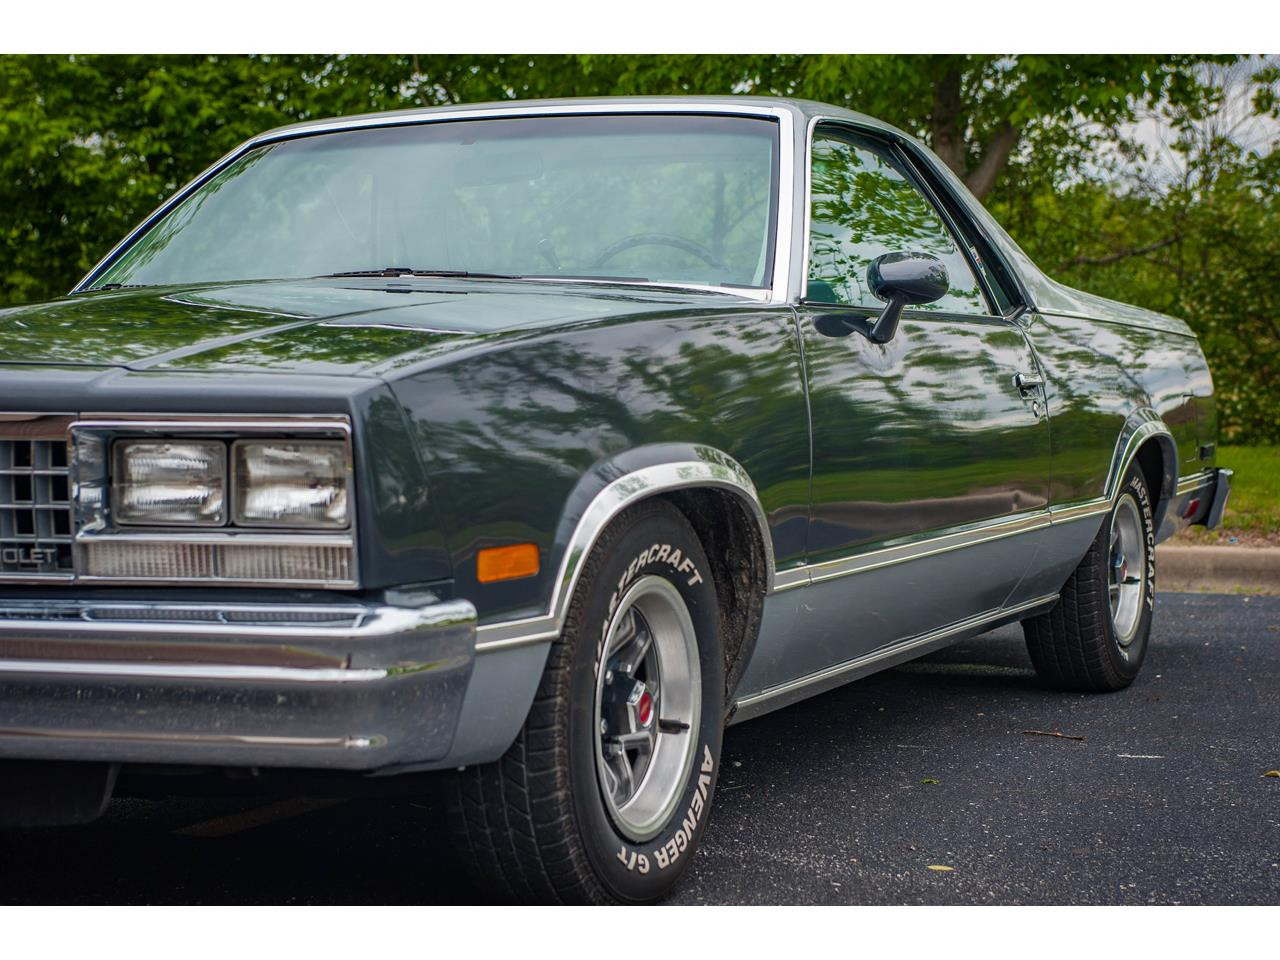 Large Picture of 1982 El Camino located in O'Fallon Illinois Offered by Gateway Classic Cars - St. Louis - QB9A